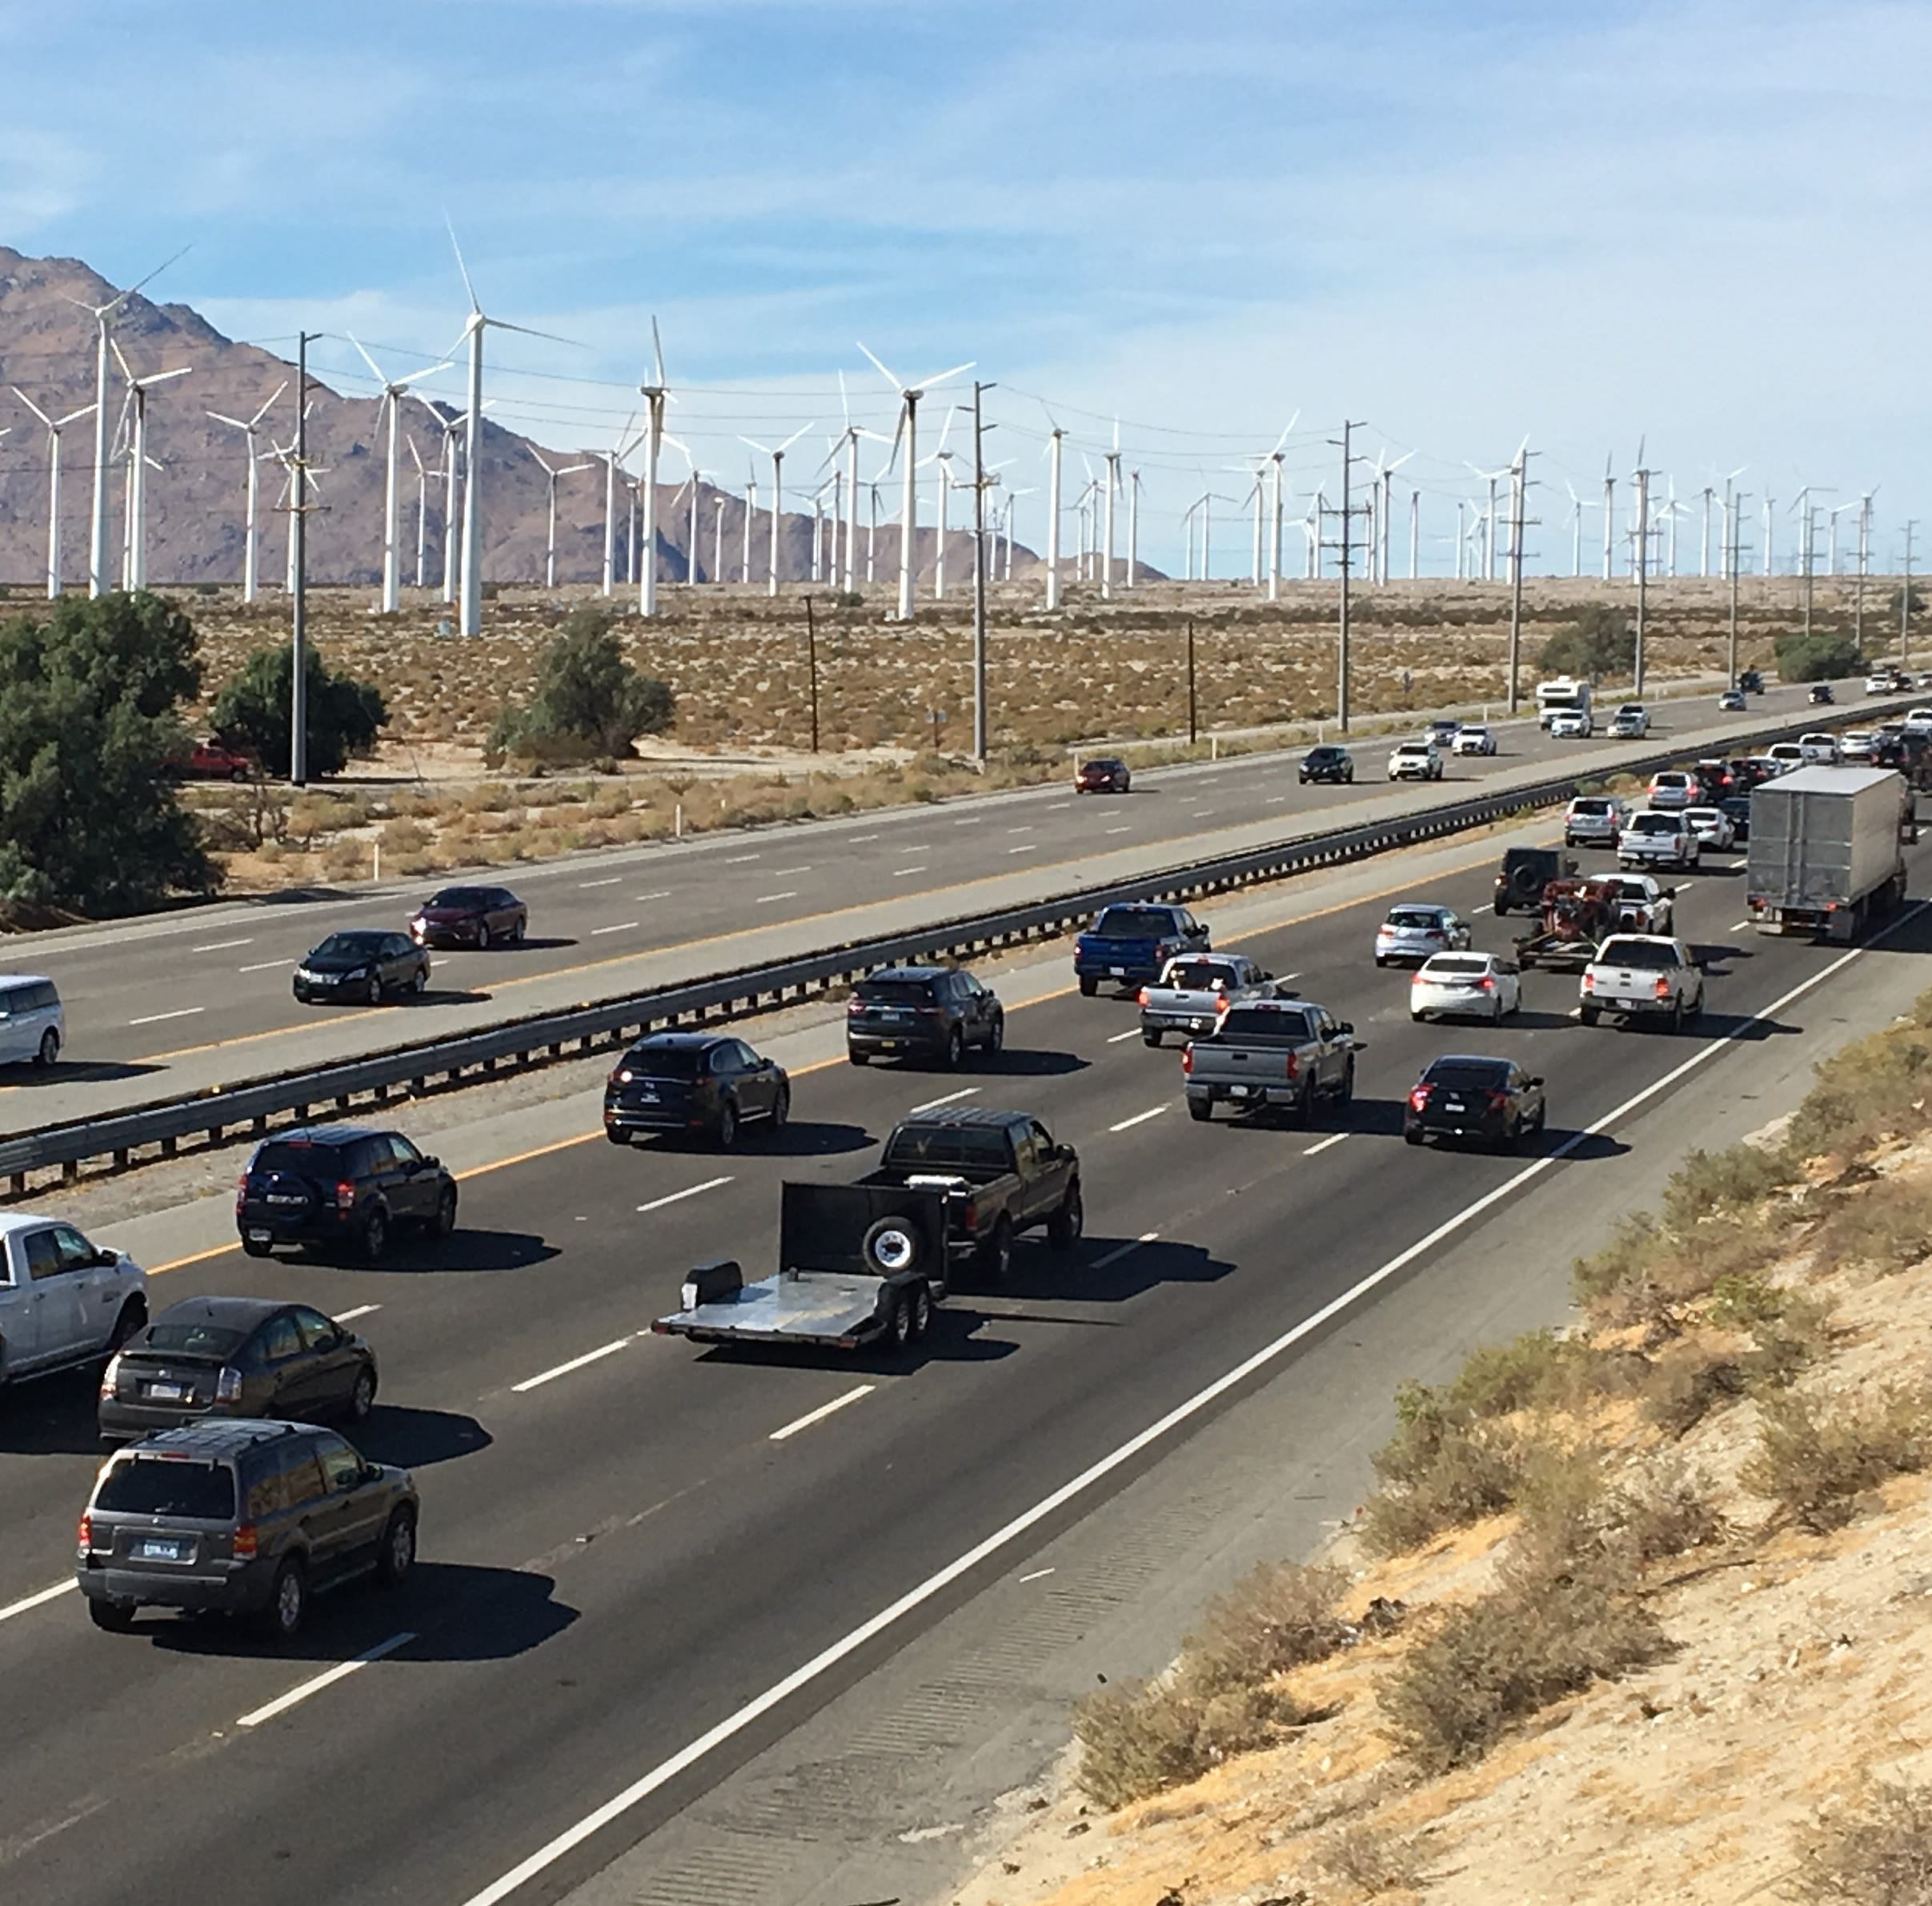 Coachella and Stagecoach are here and these are the freeways that will be most affected